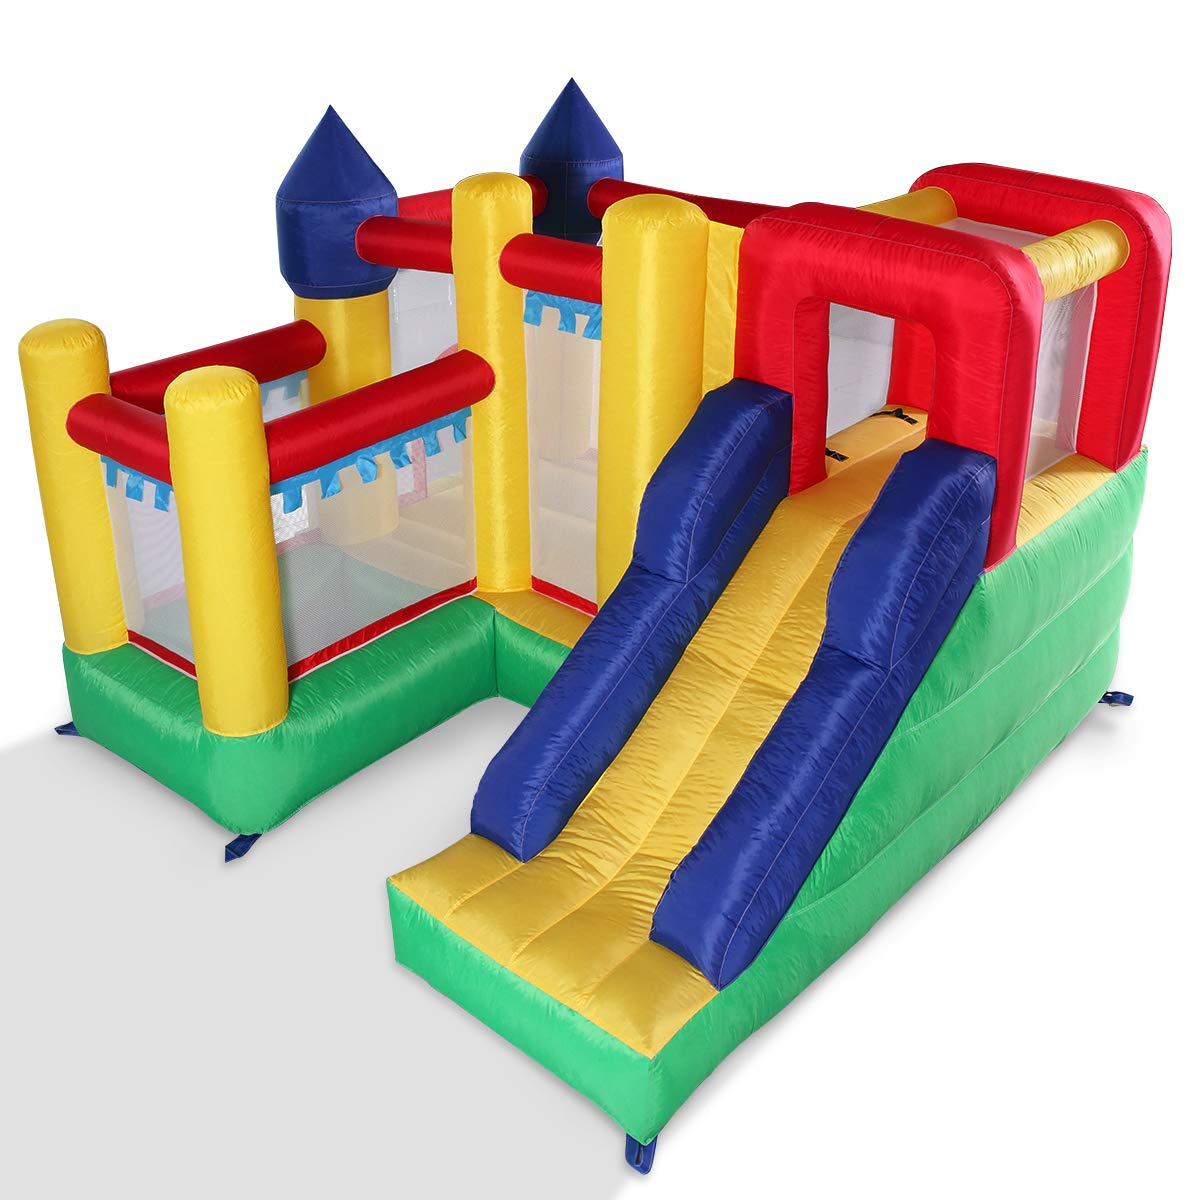 Kids Inflatable Bounce House Castle Jumper Slide Moonwalk Without Blower by BWM.Co (Image #3)